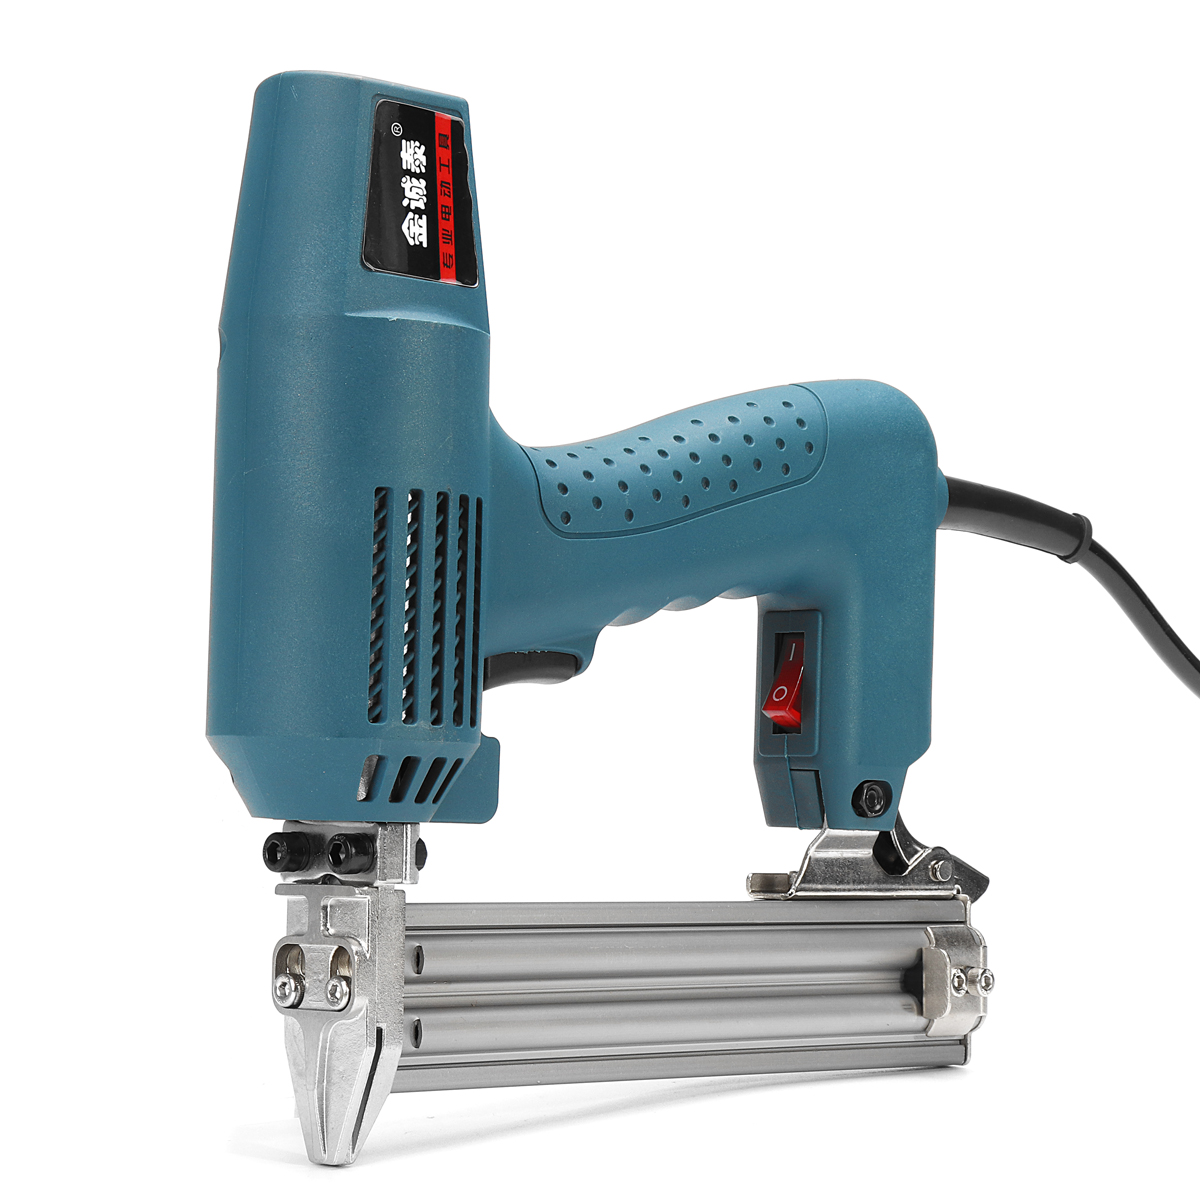 1800W 220V F30 Corded Electric Nailer Stapler Electric Staple Nail G un